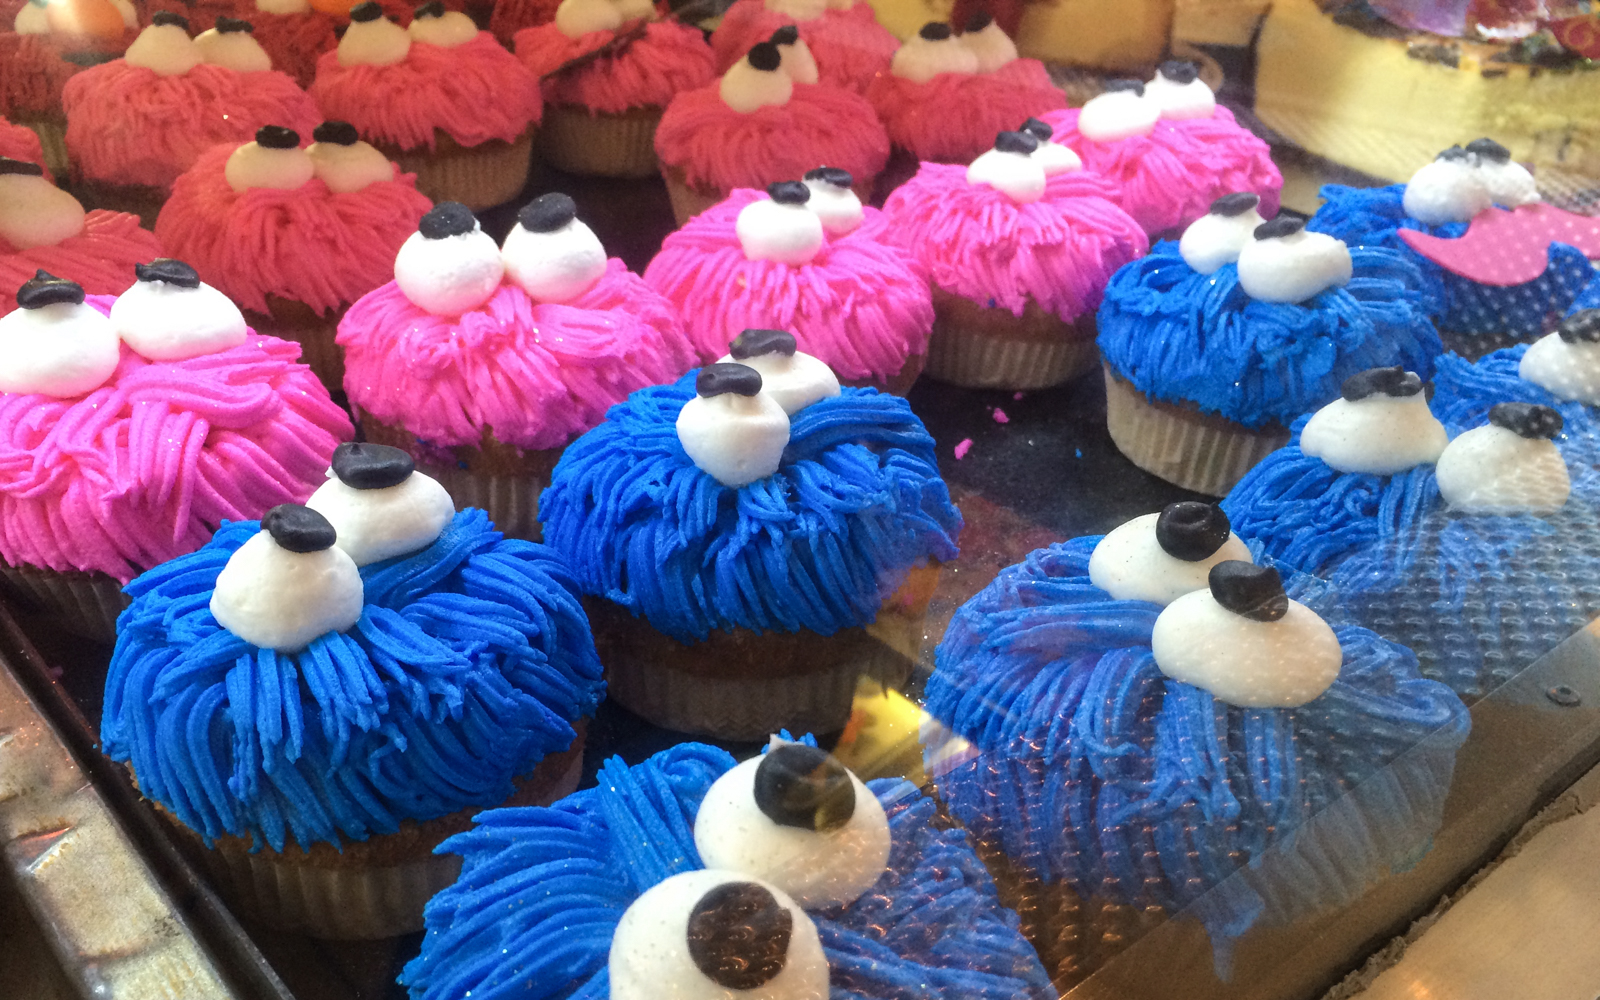 charlys-bakery-cupcake-cookiemonster-1